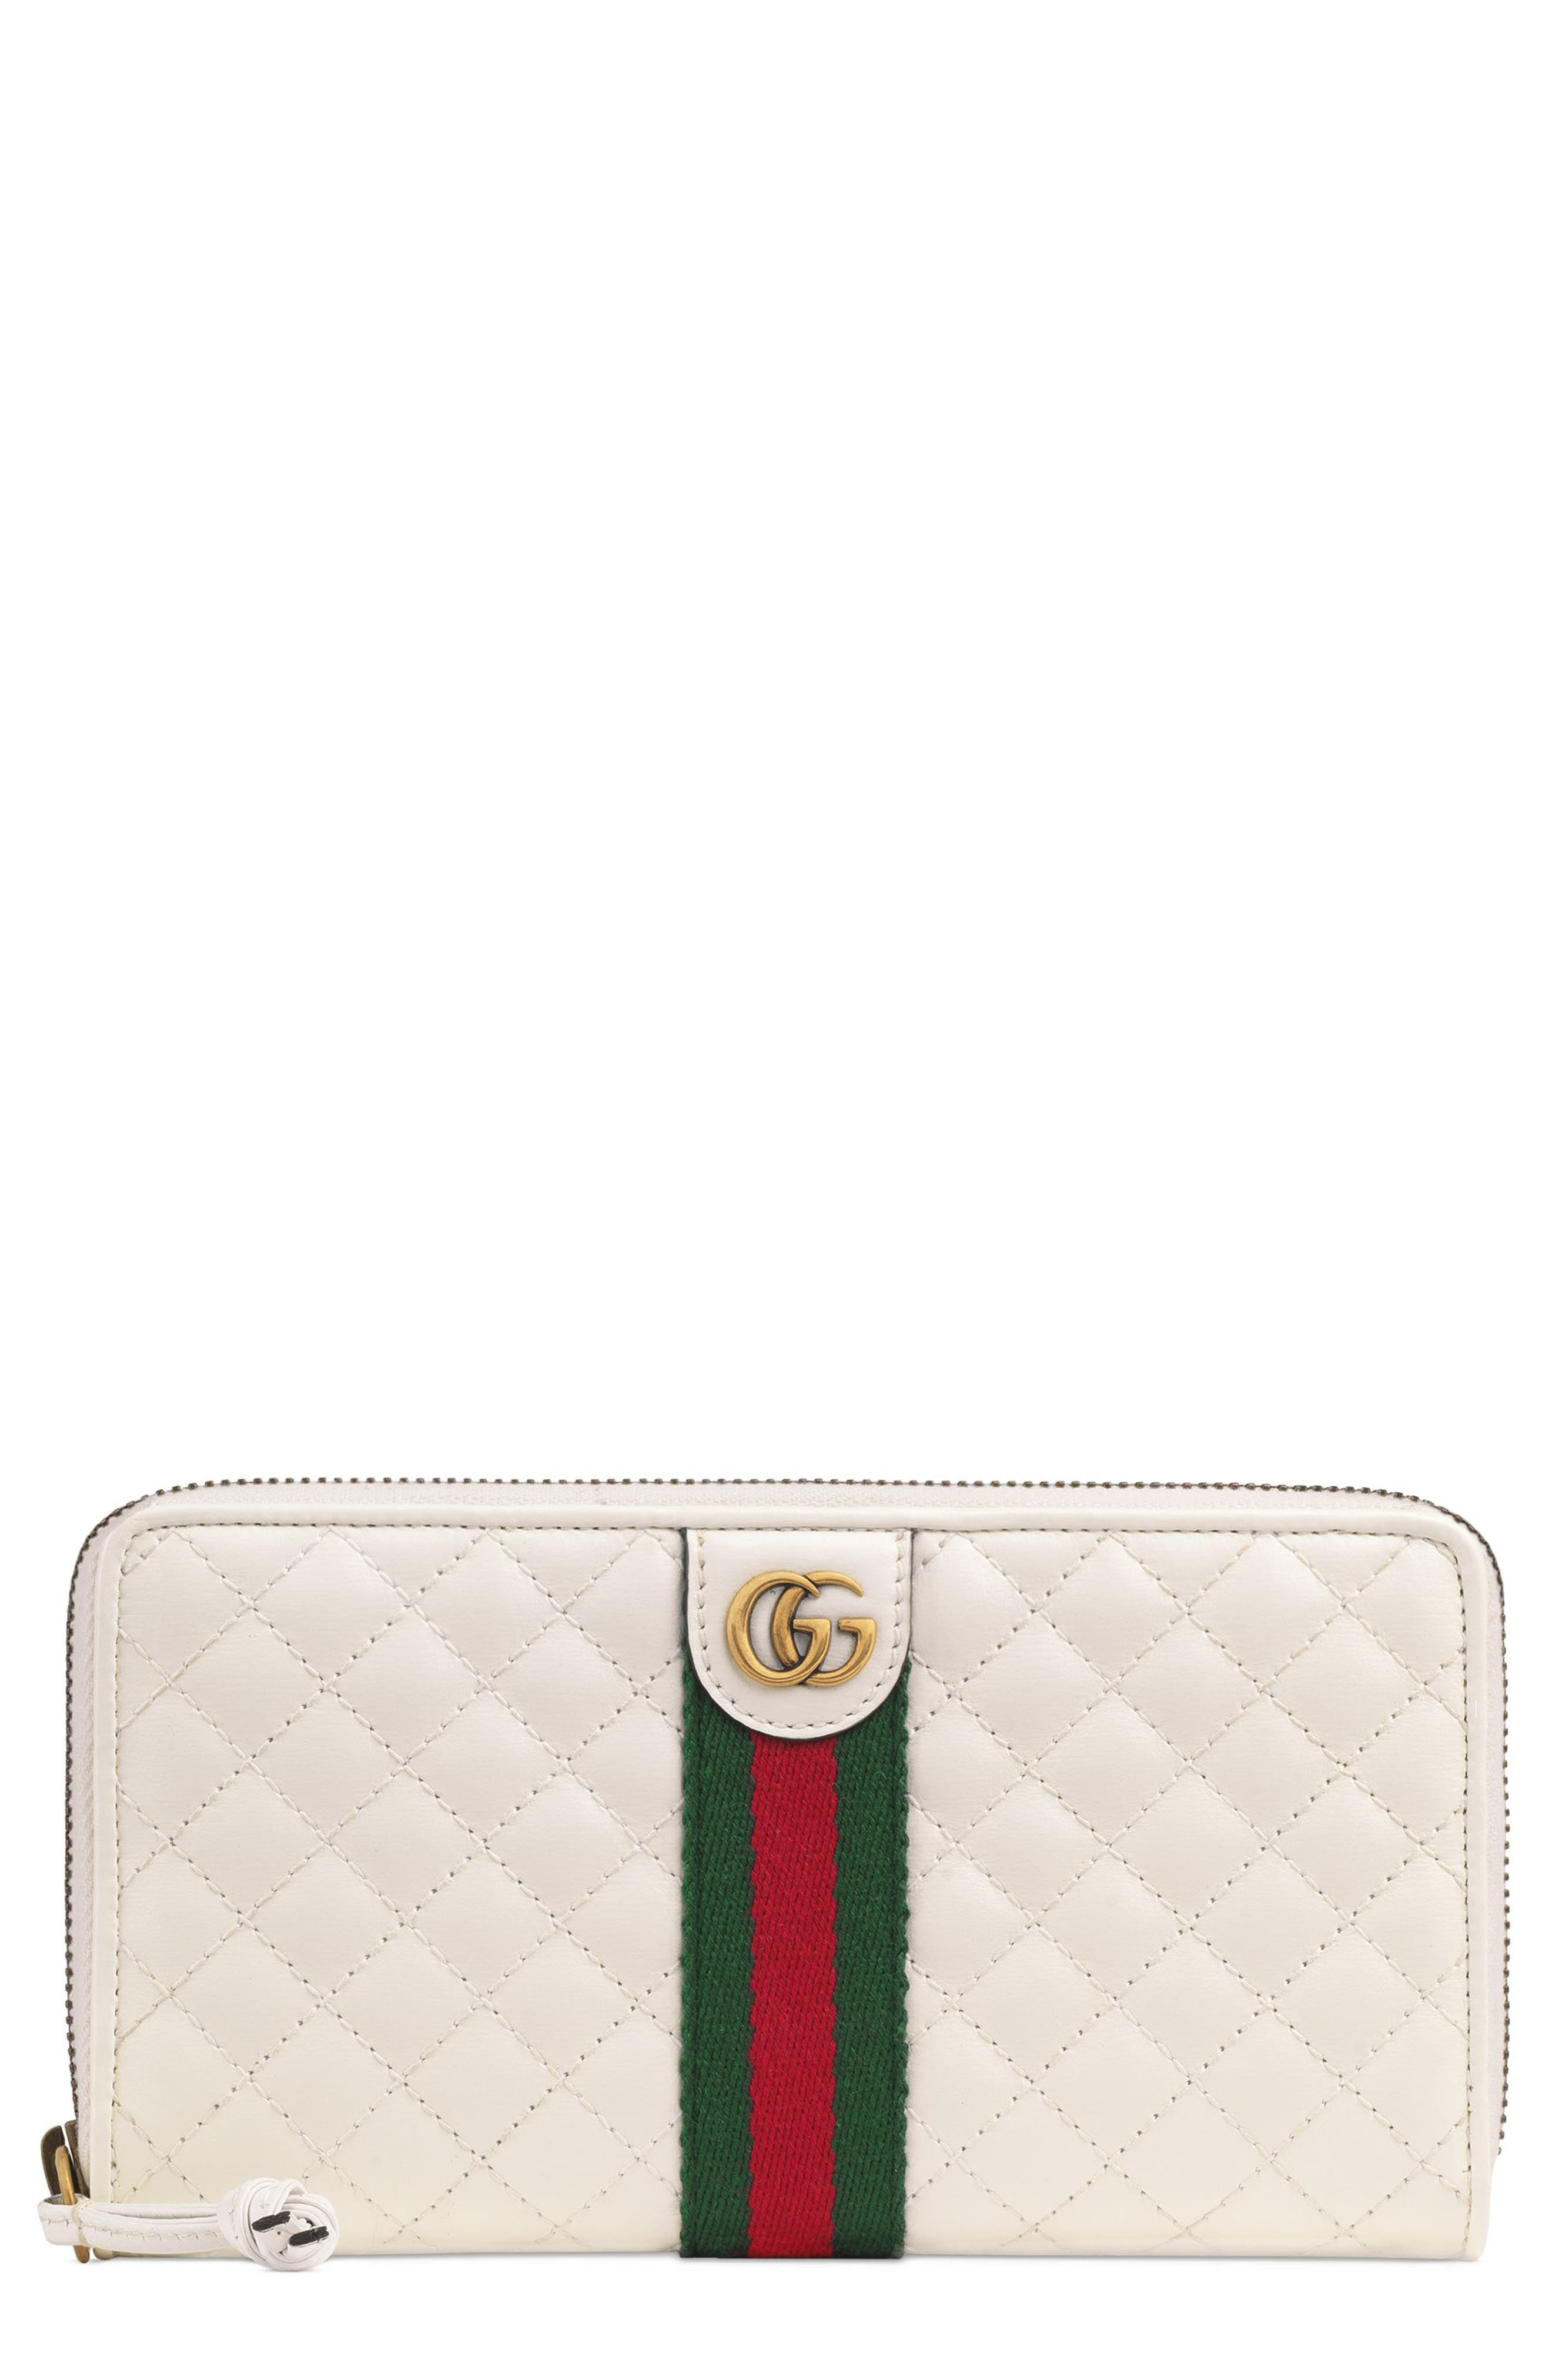 Quilted Leather Zip Around Continental Wallet,                             Main thumbnail 1, color,                             OFF WHITE/ VERT/ RED